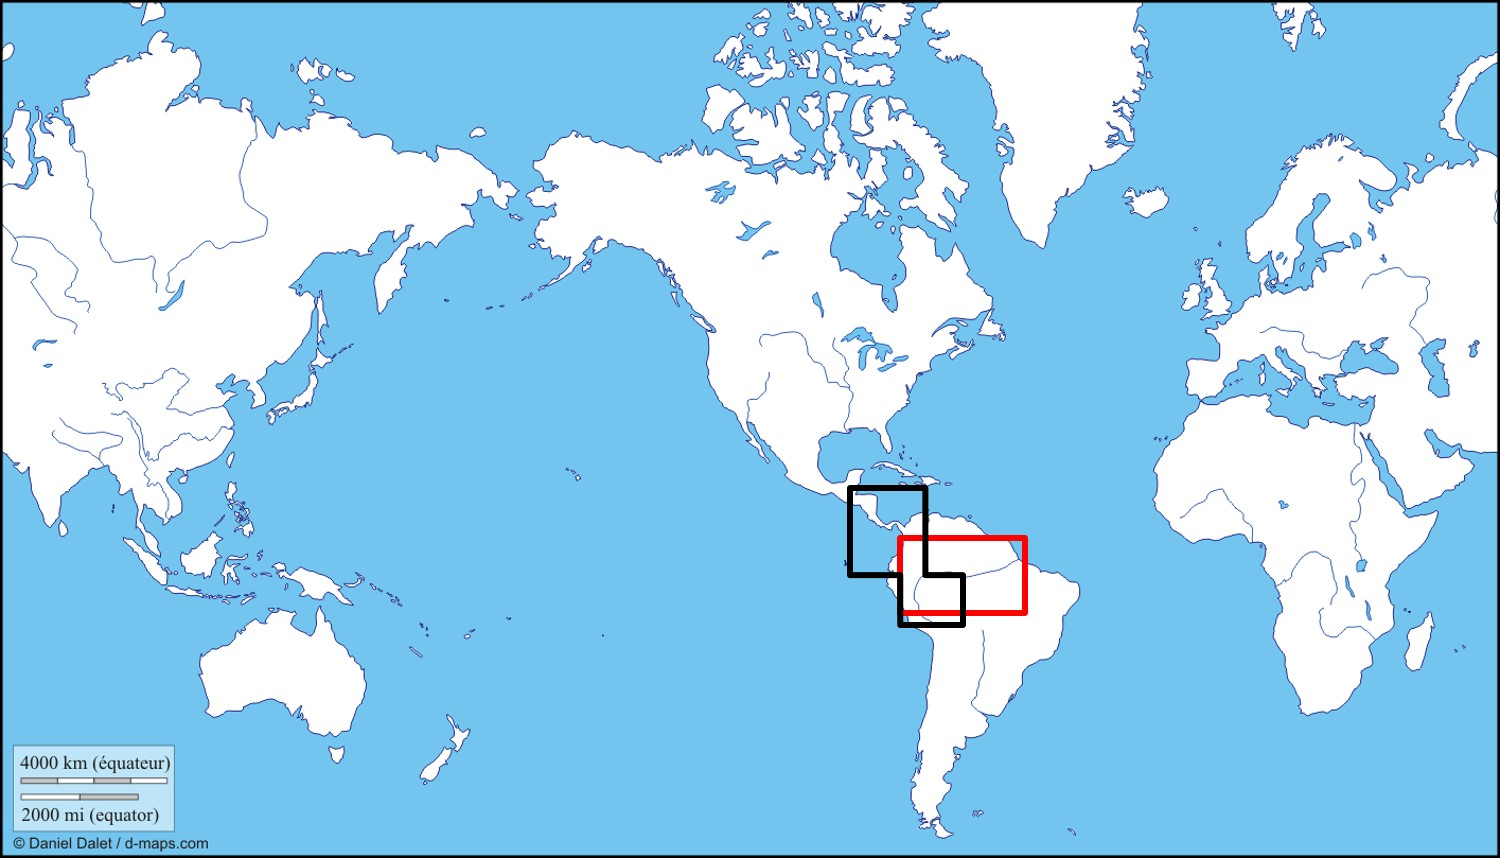 Distribution of two species of two-toed sloths